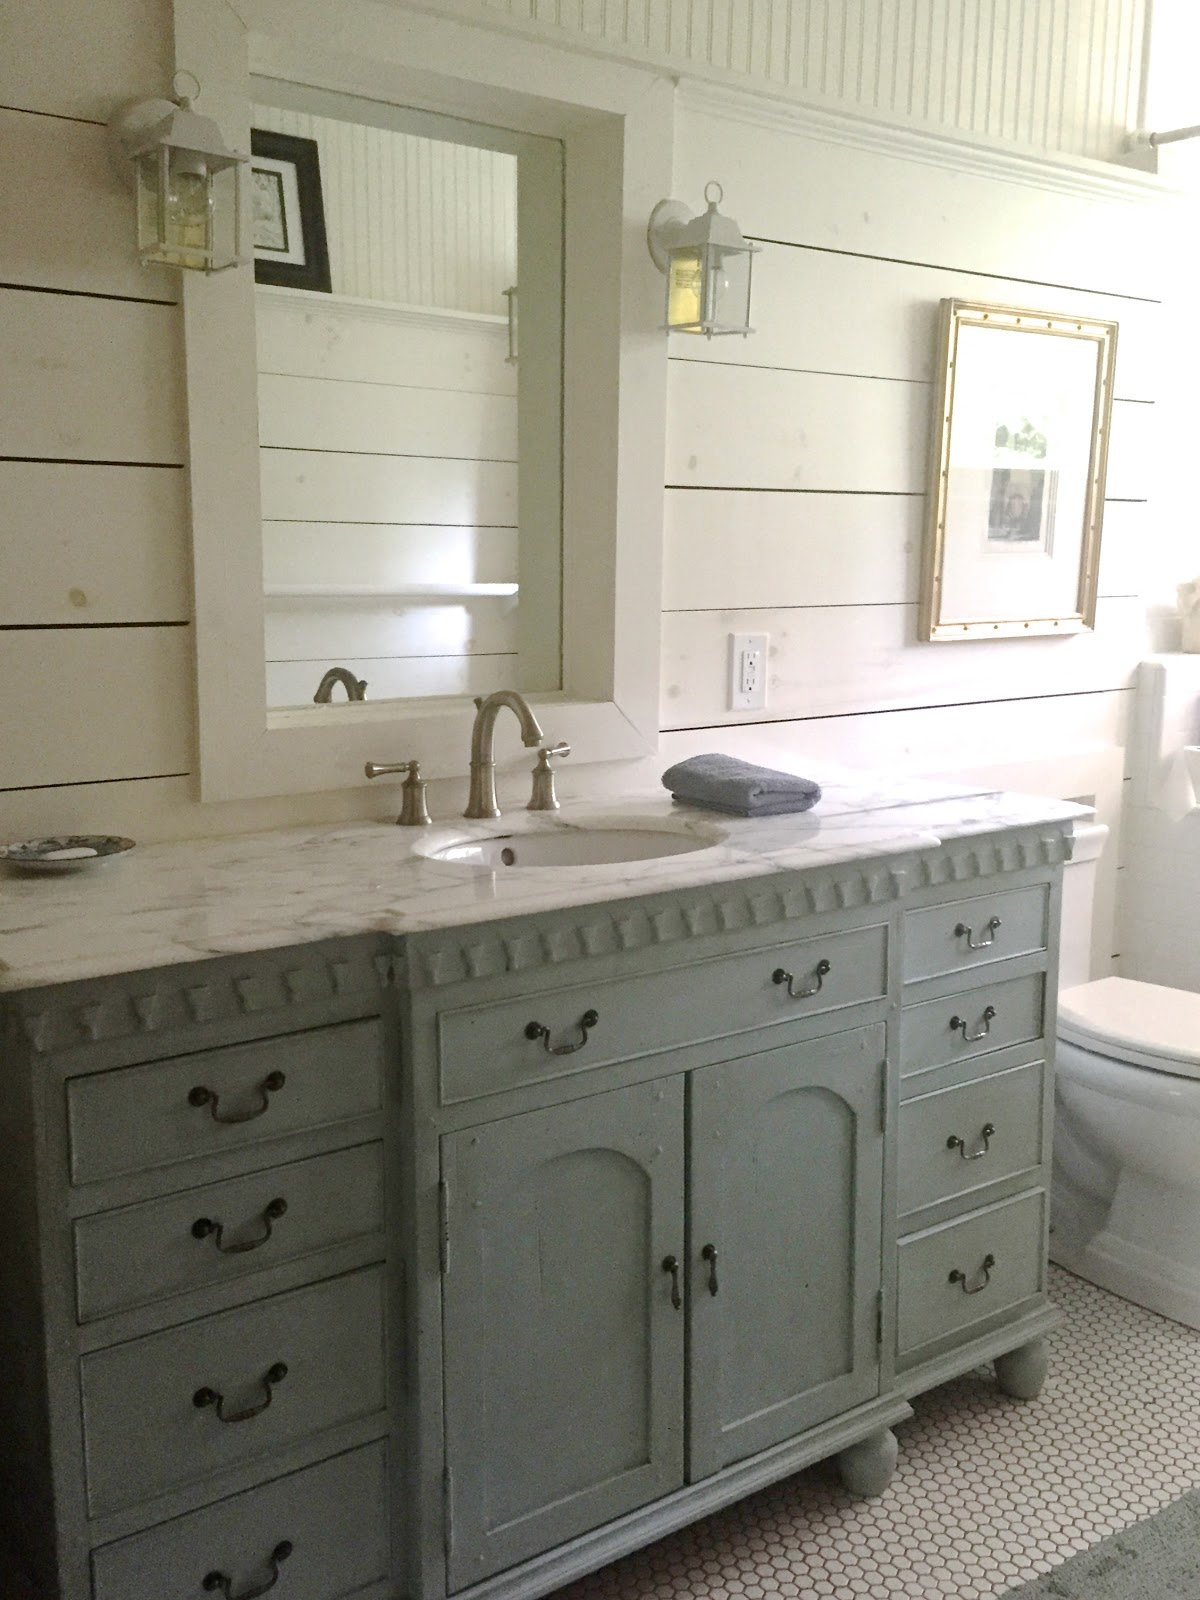 Bath vanities design indulgence - Small cottage style bathroom vanity design ...